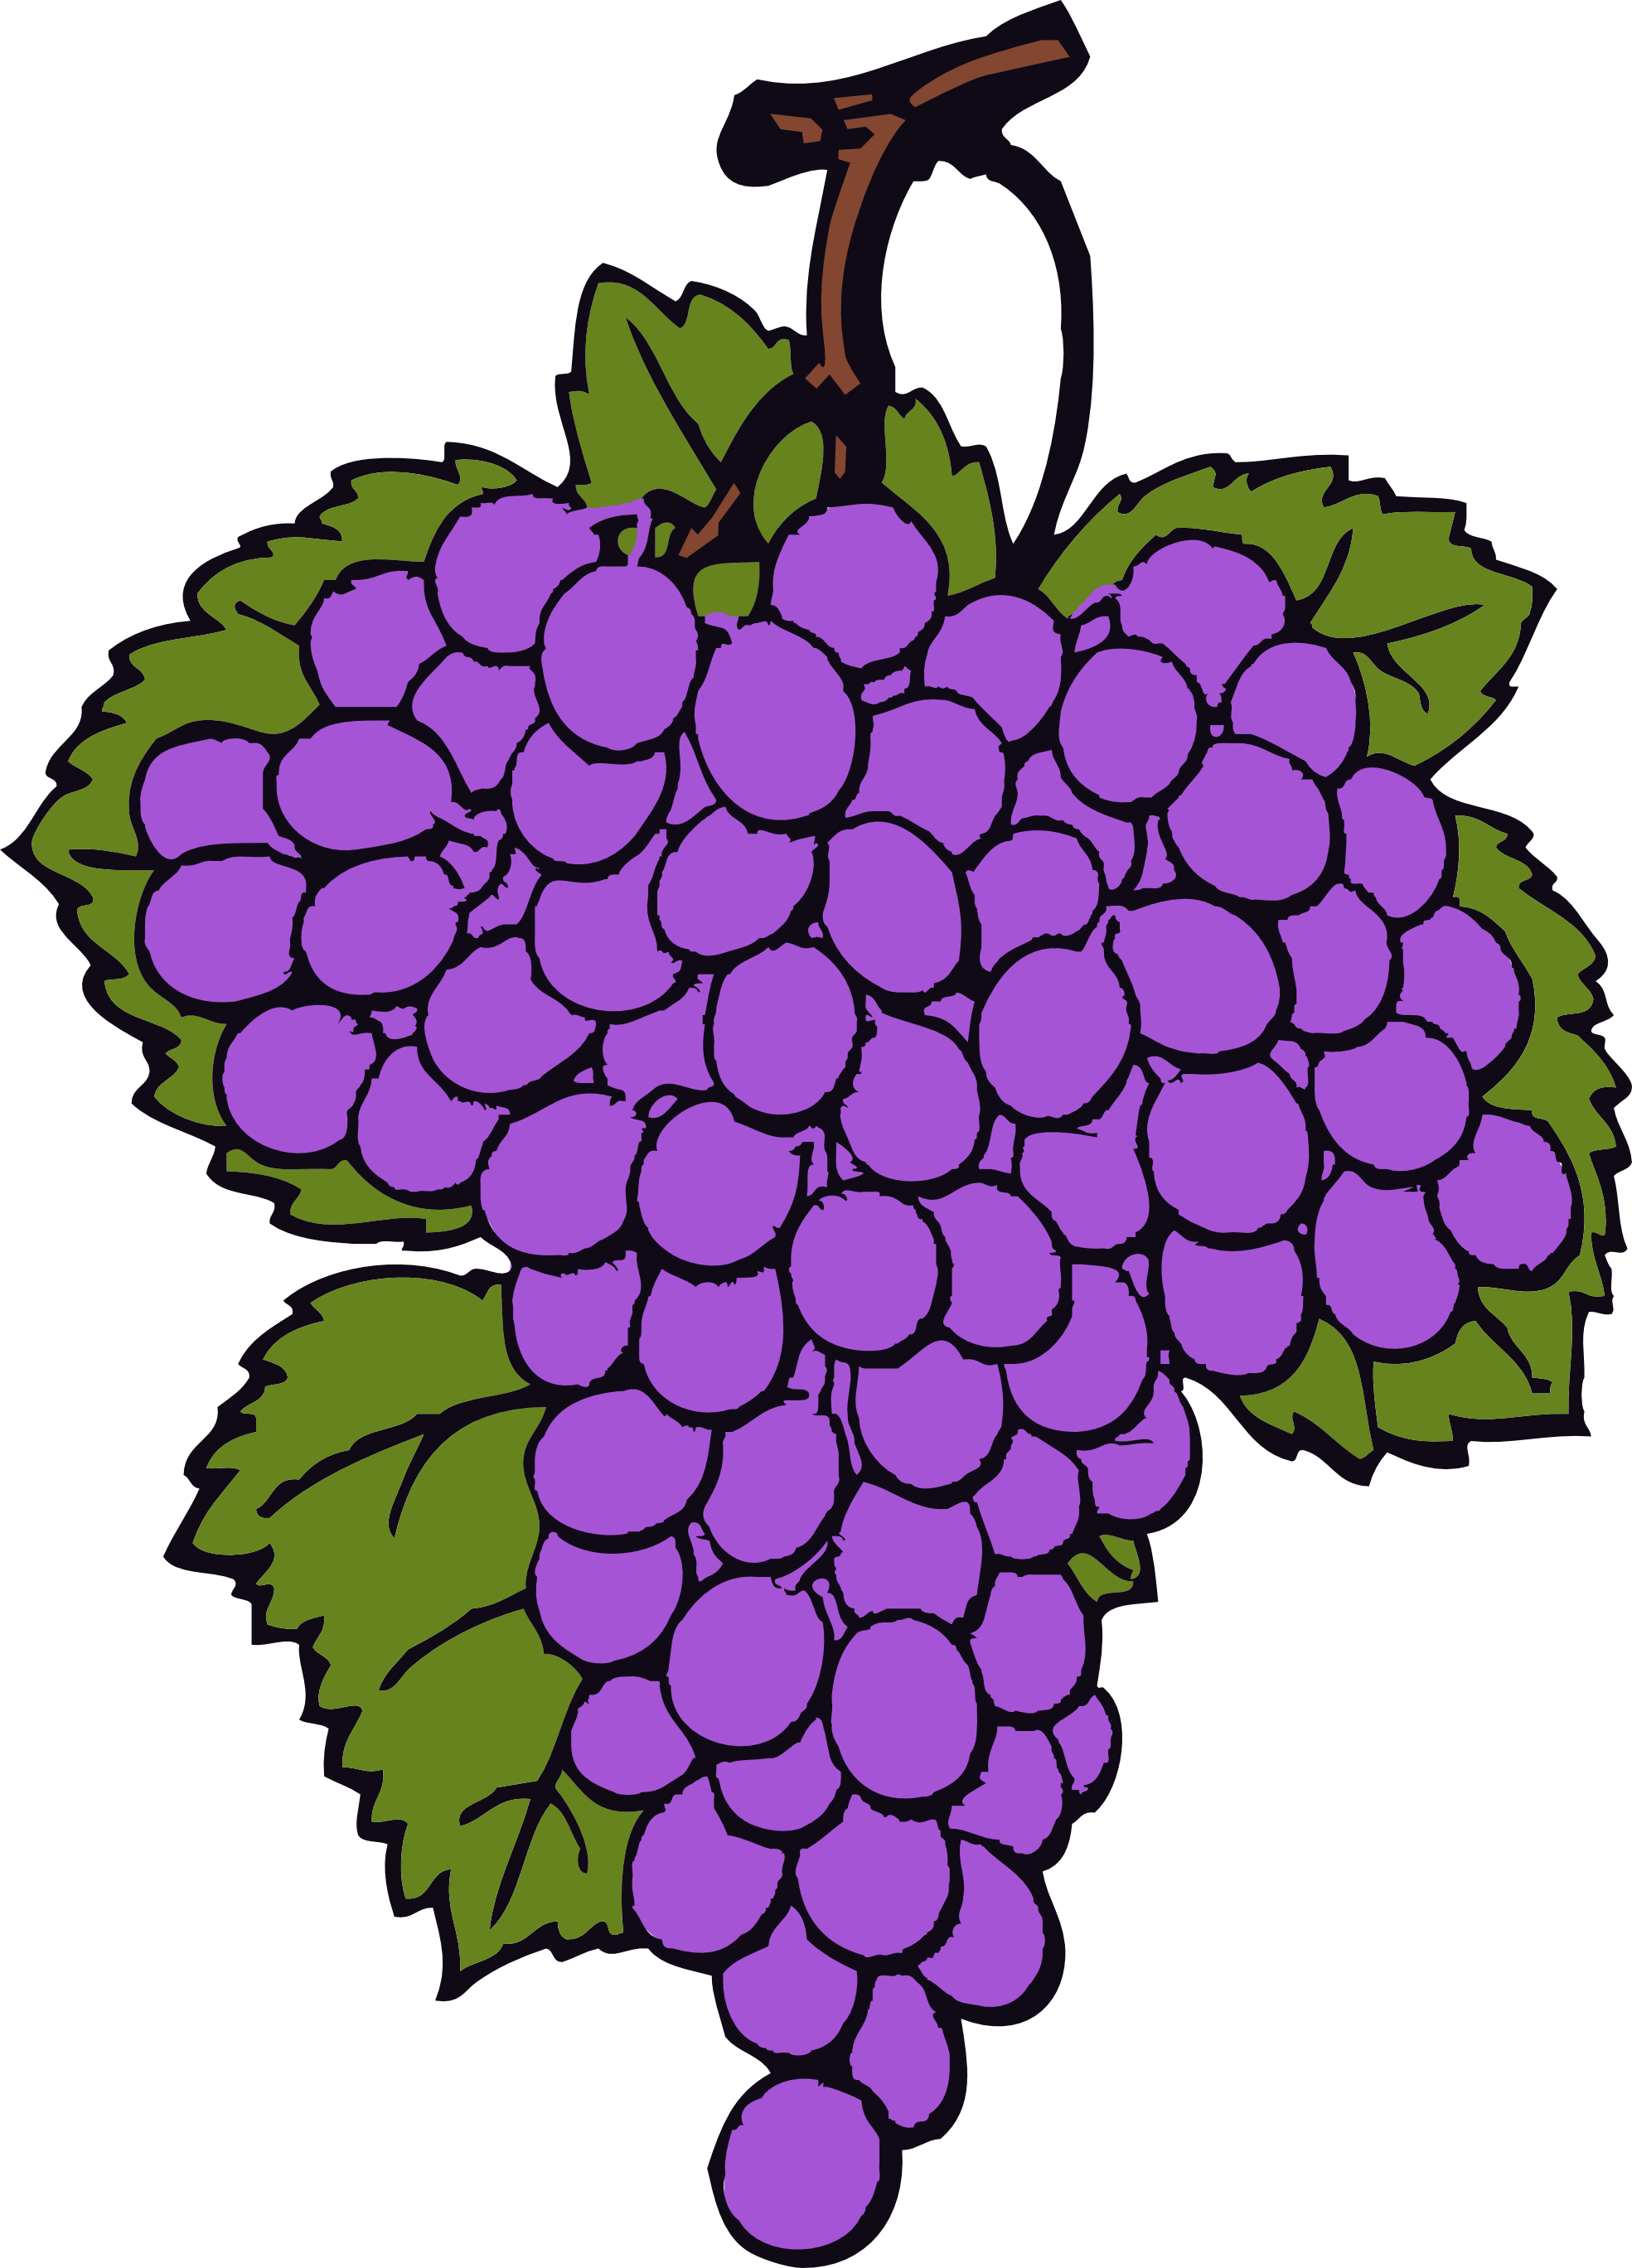 Graapes clipart banner royalty free download Best Grapes Clipart #13285 - Clipartion.com banner royalty free download